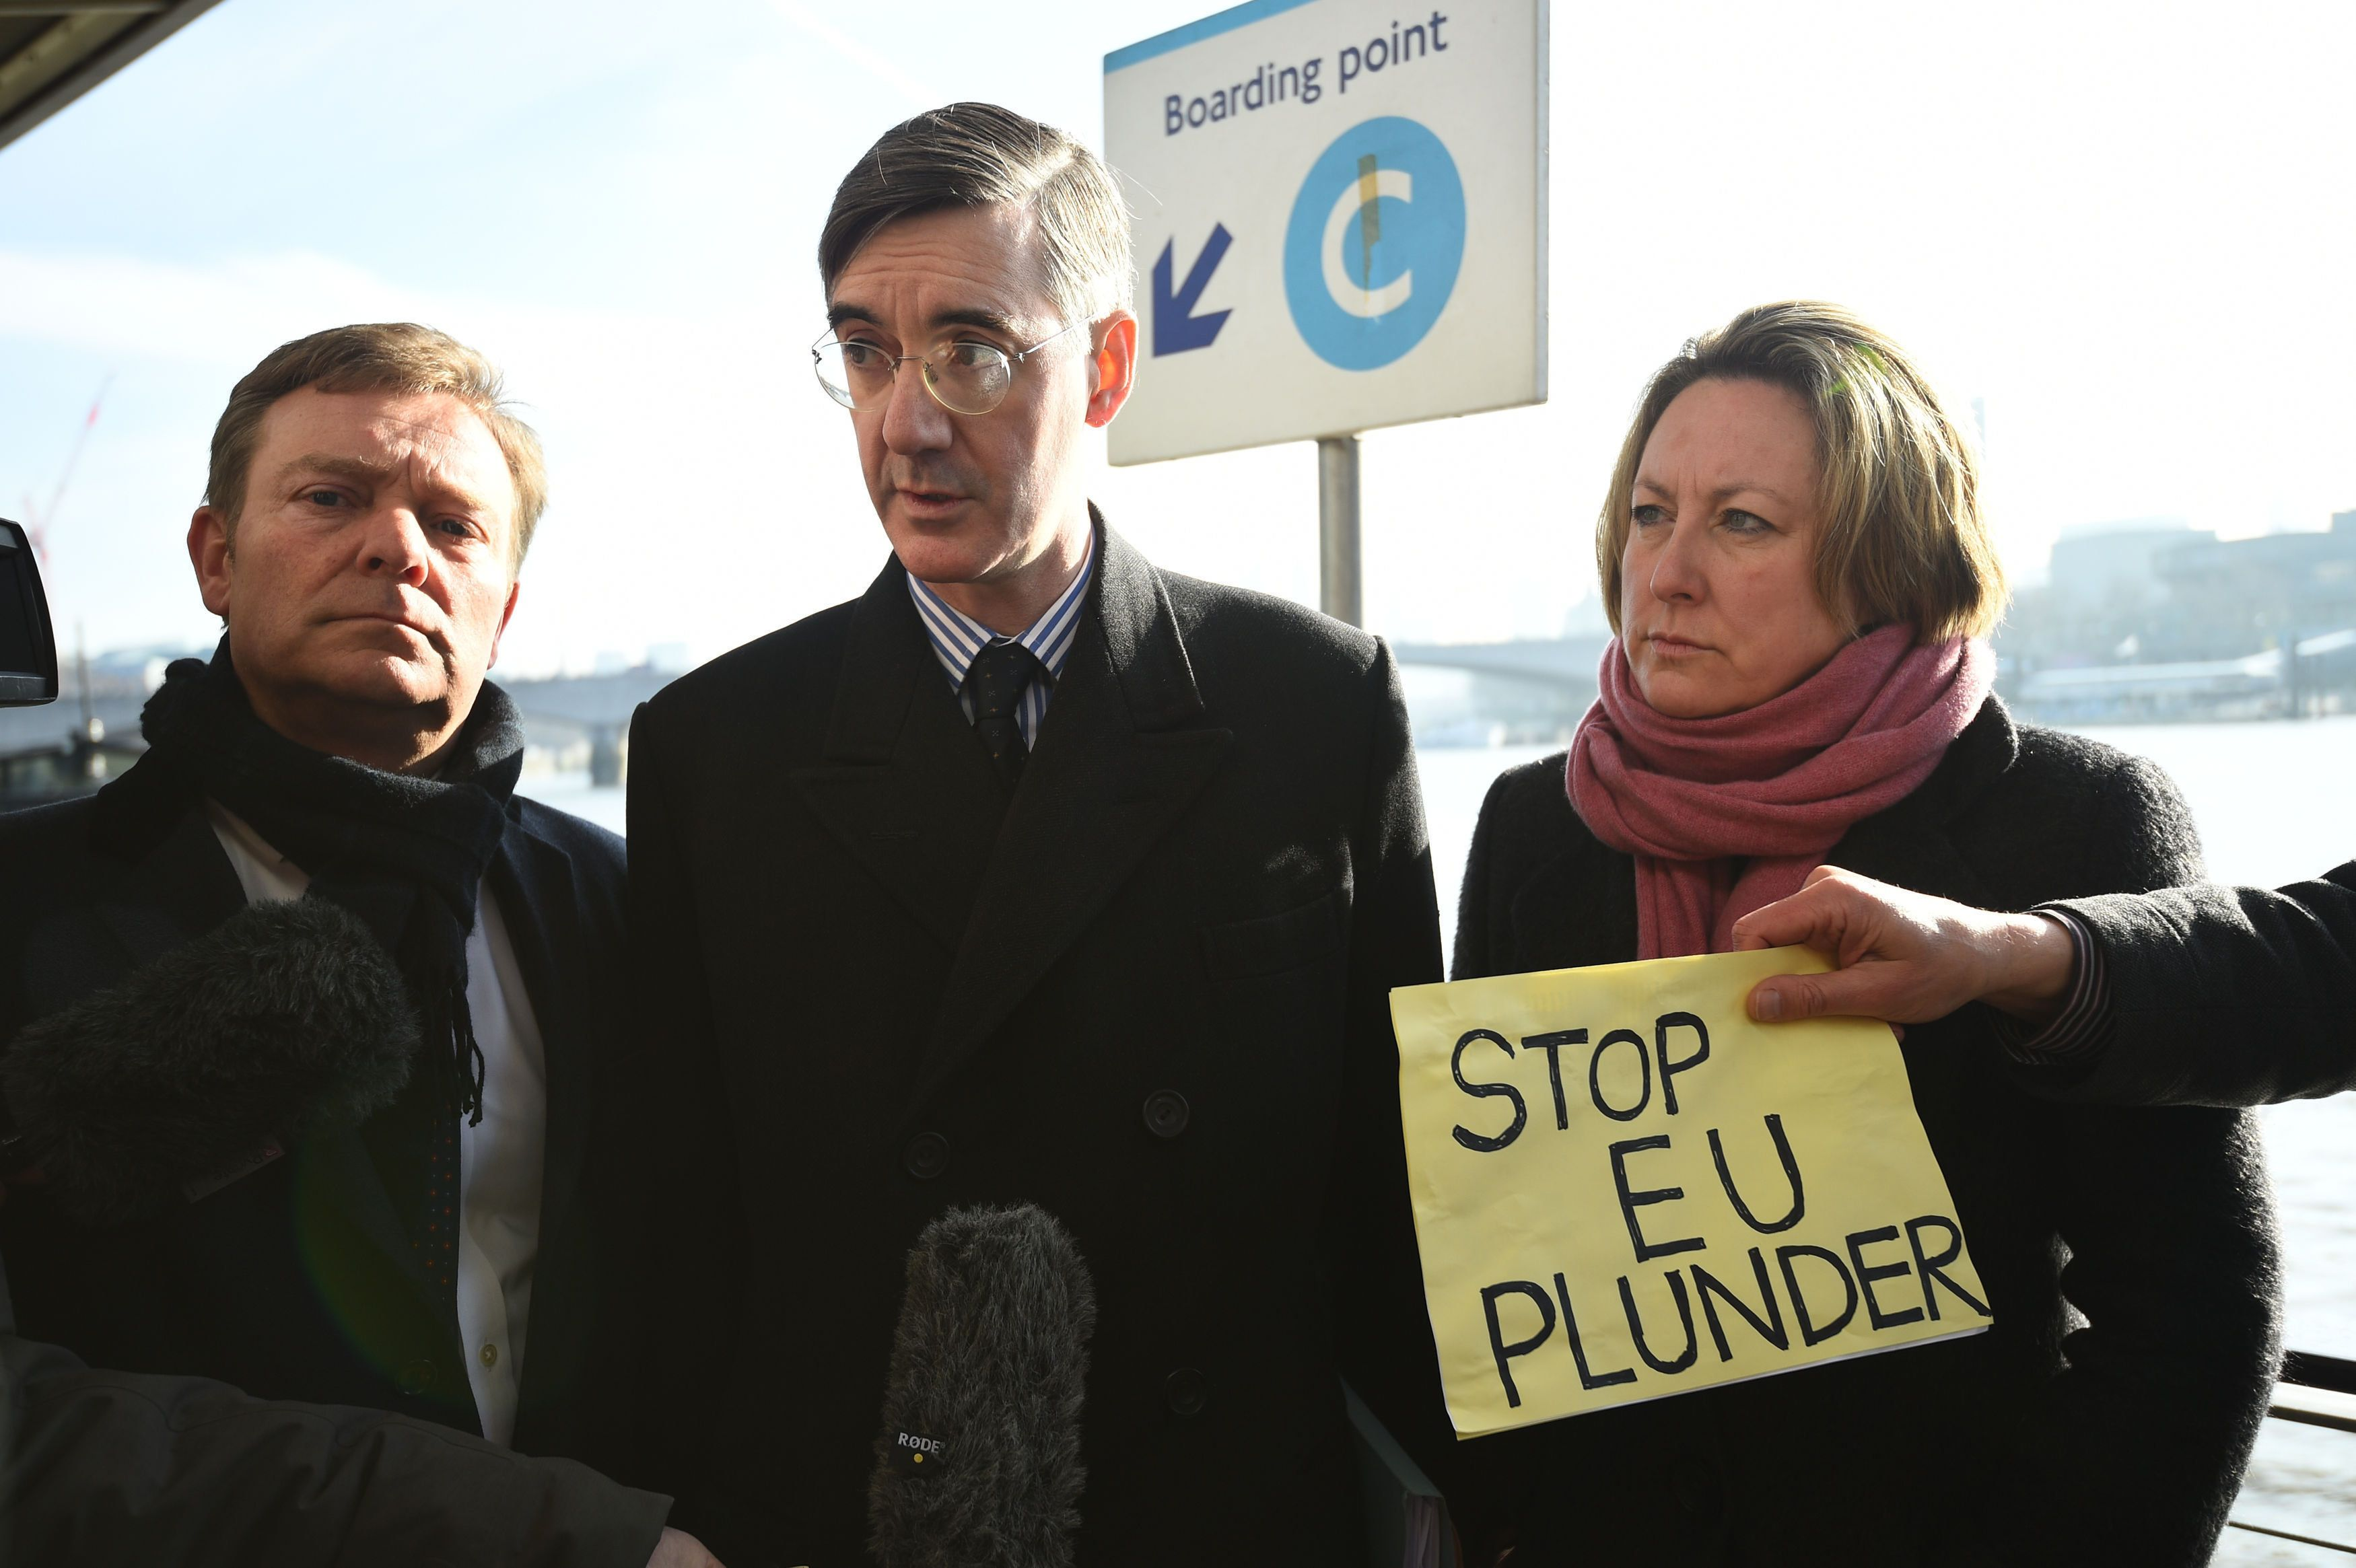 Farage returns to Thames to make fisheries protest